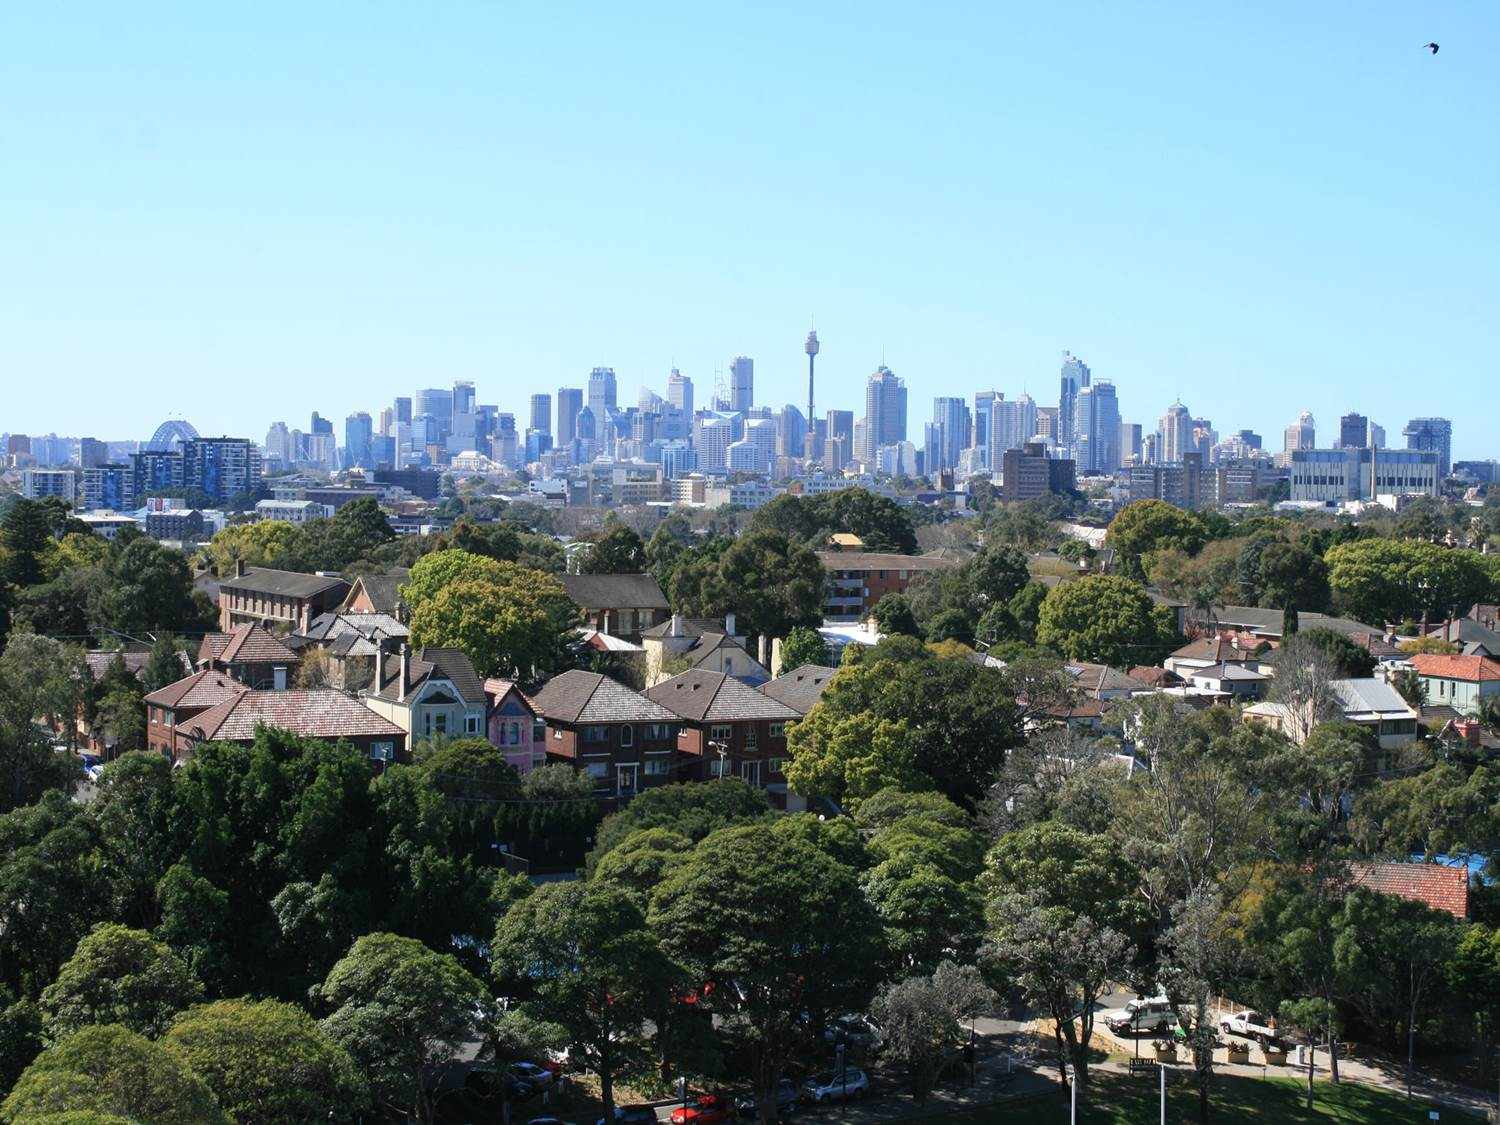 View over neighbourhood with many trees